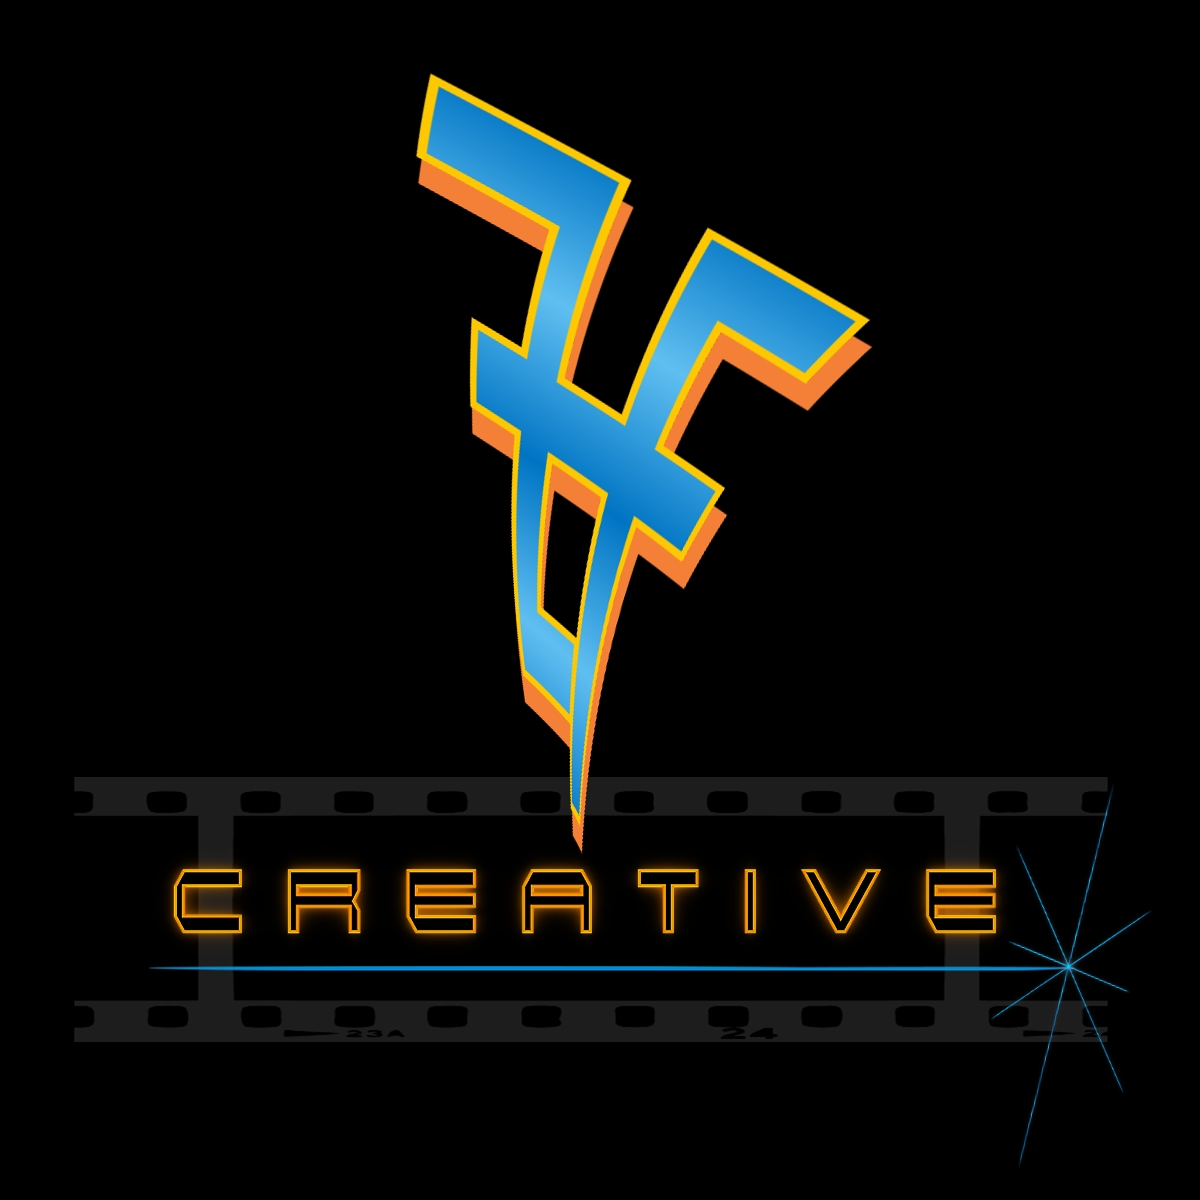 Logo Design by Joseph calunsag Cagaanan - Entry No. 45 in the Logo Design Contest ZF Creative Logo Contest.